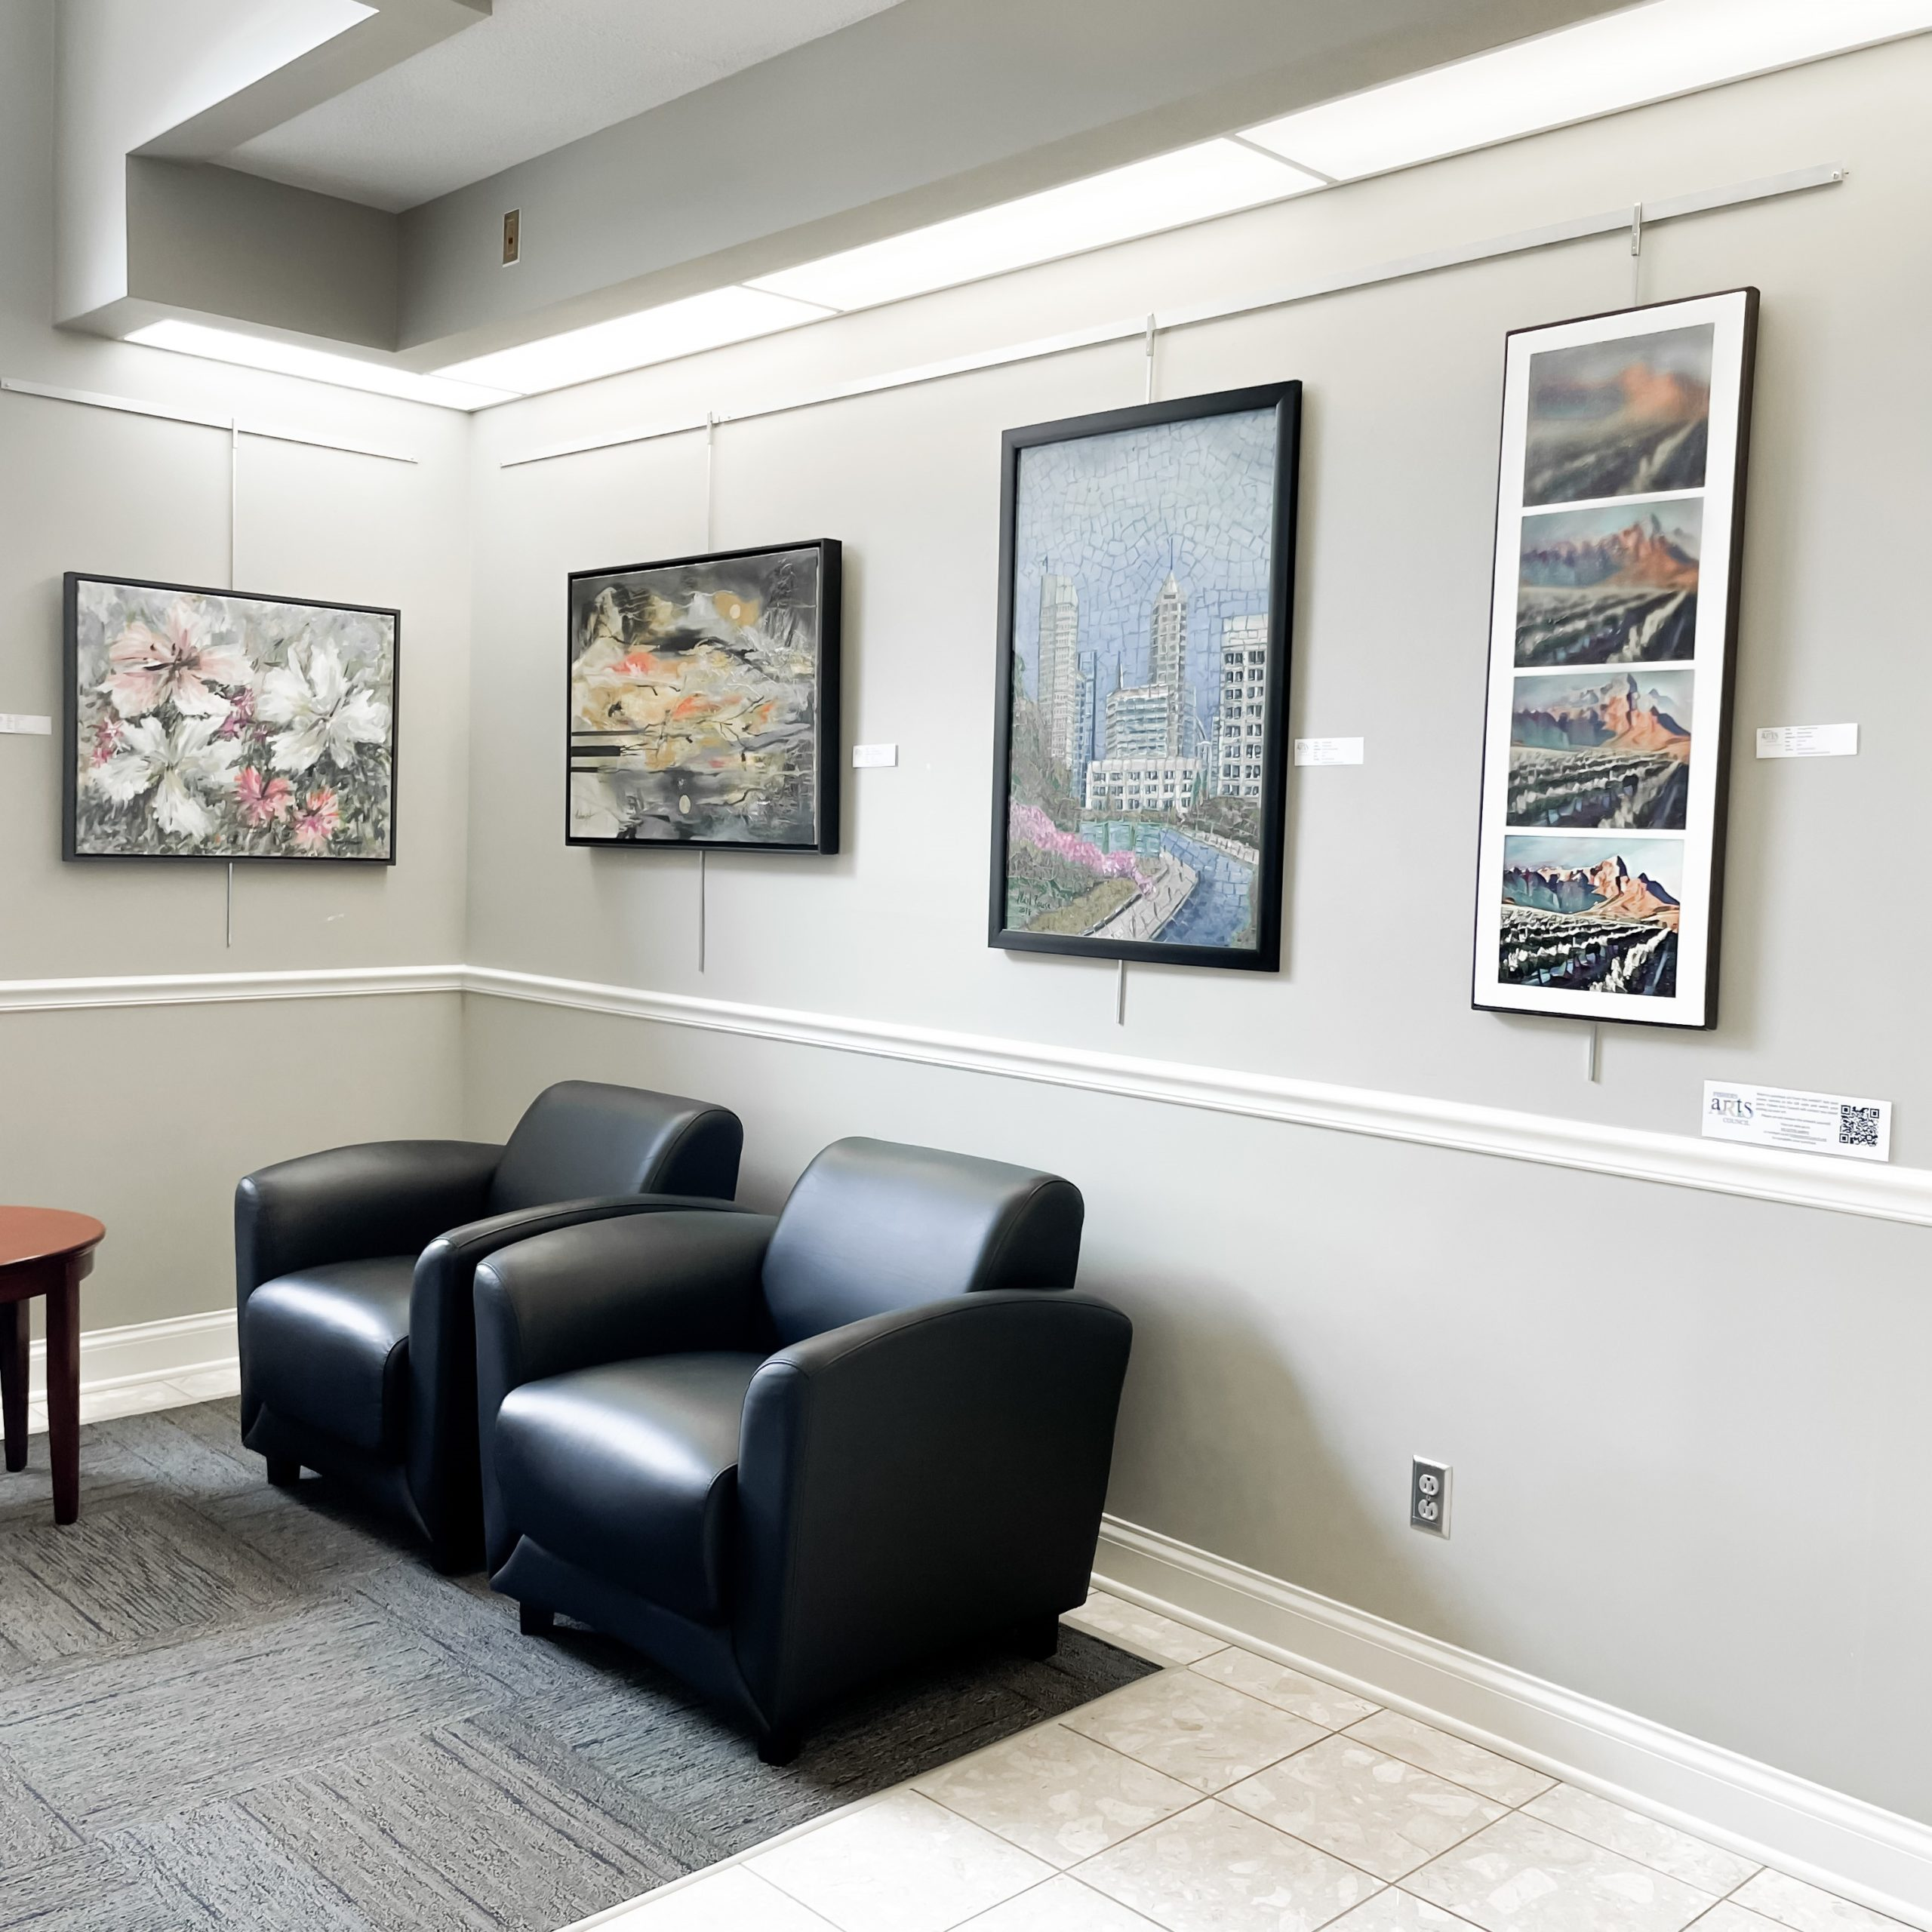 two black chairs and paintings on the wall behind them